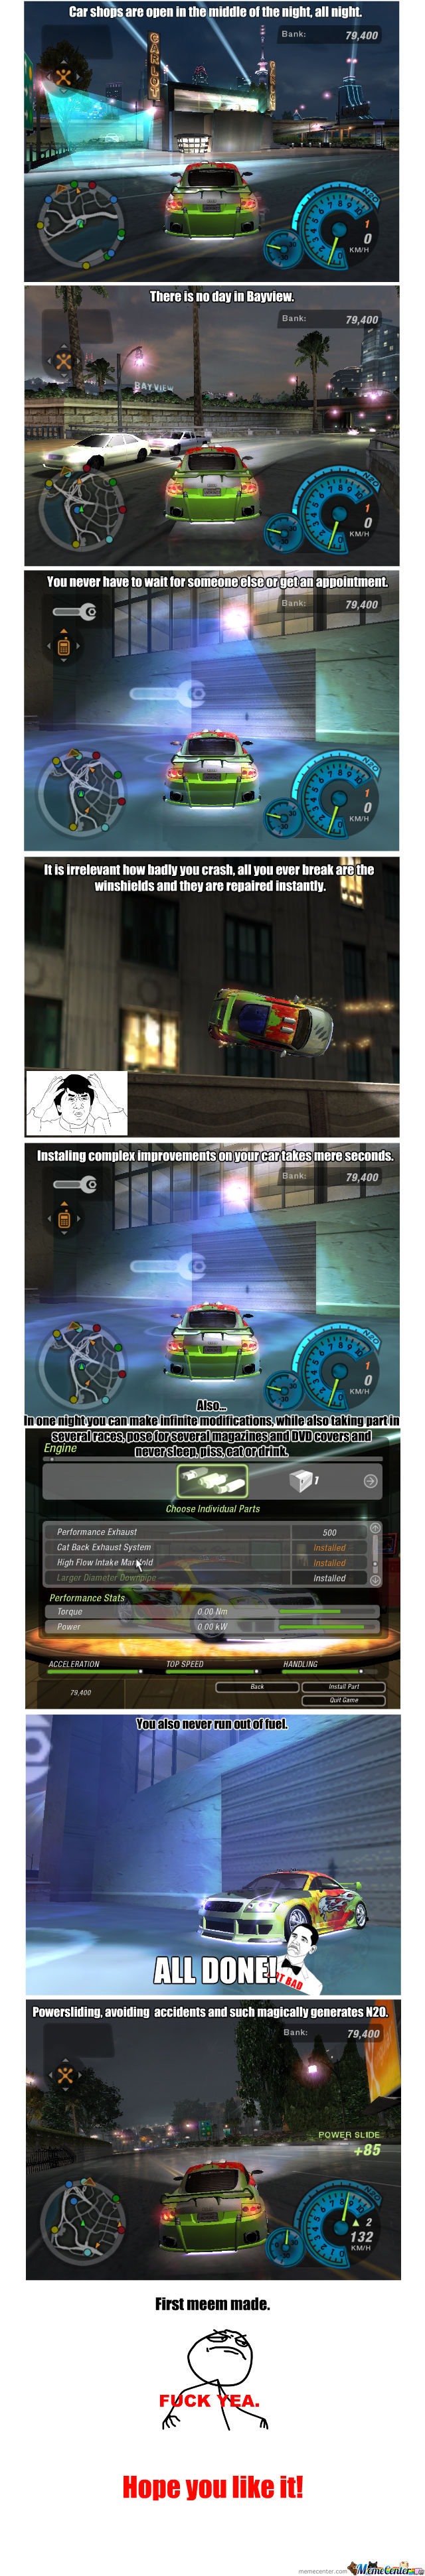 Need For Speed Underground 2 Logic by peroman200 - Meme Center